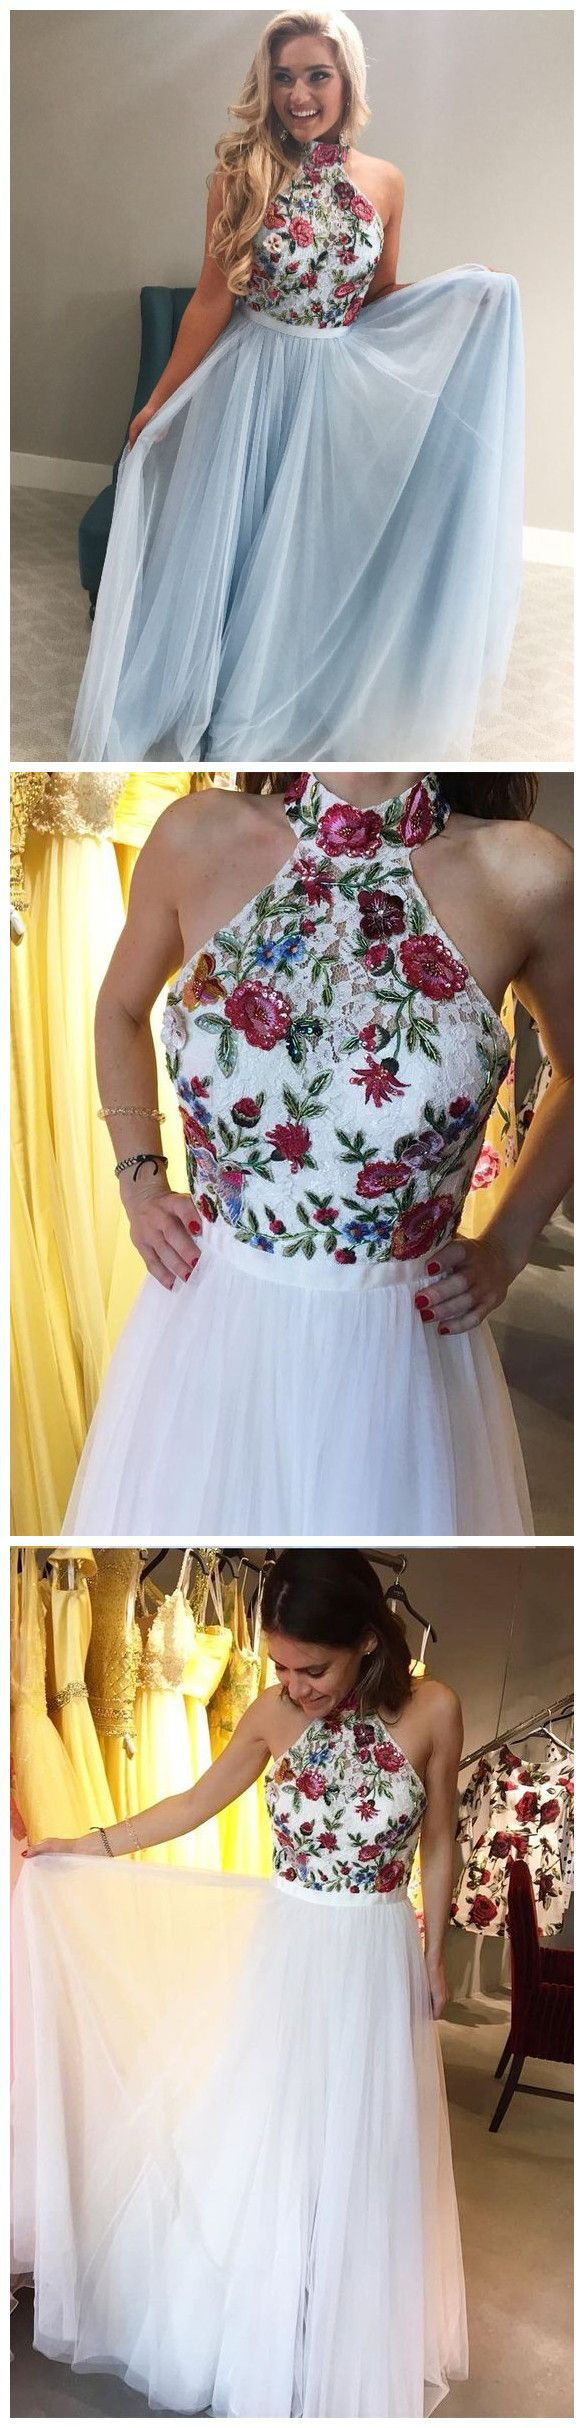 Aline prom dresses high neck floral lace cheap prom dressevening